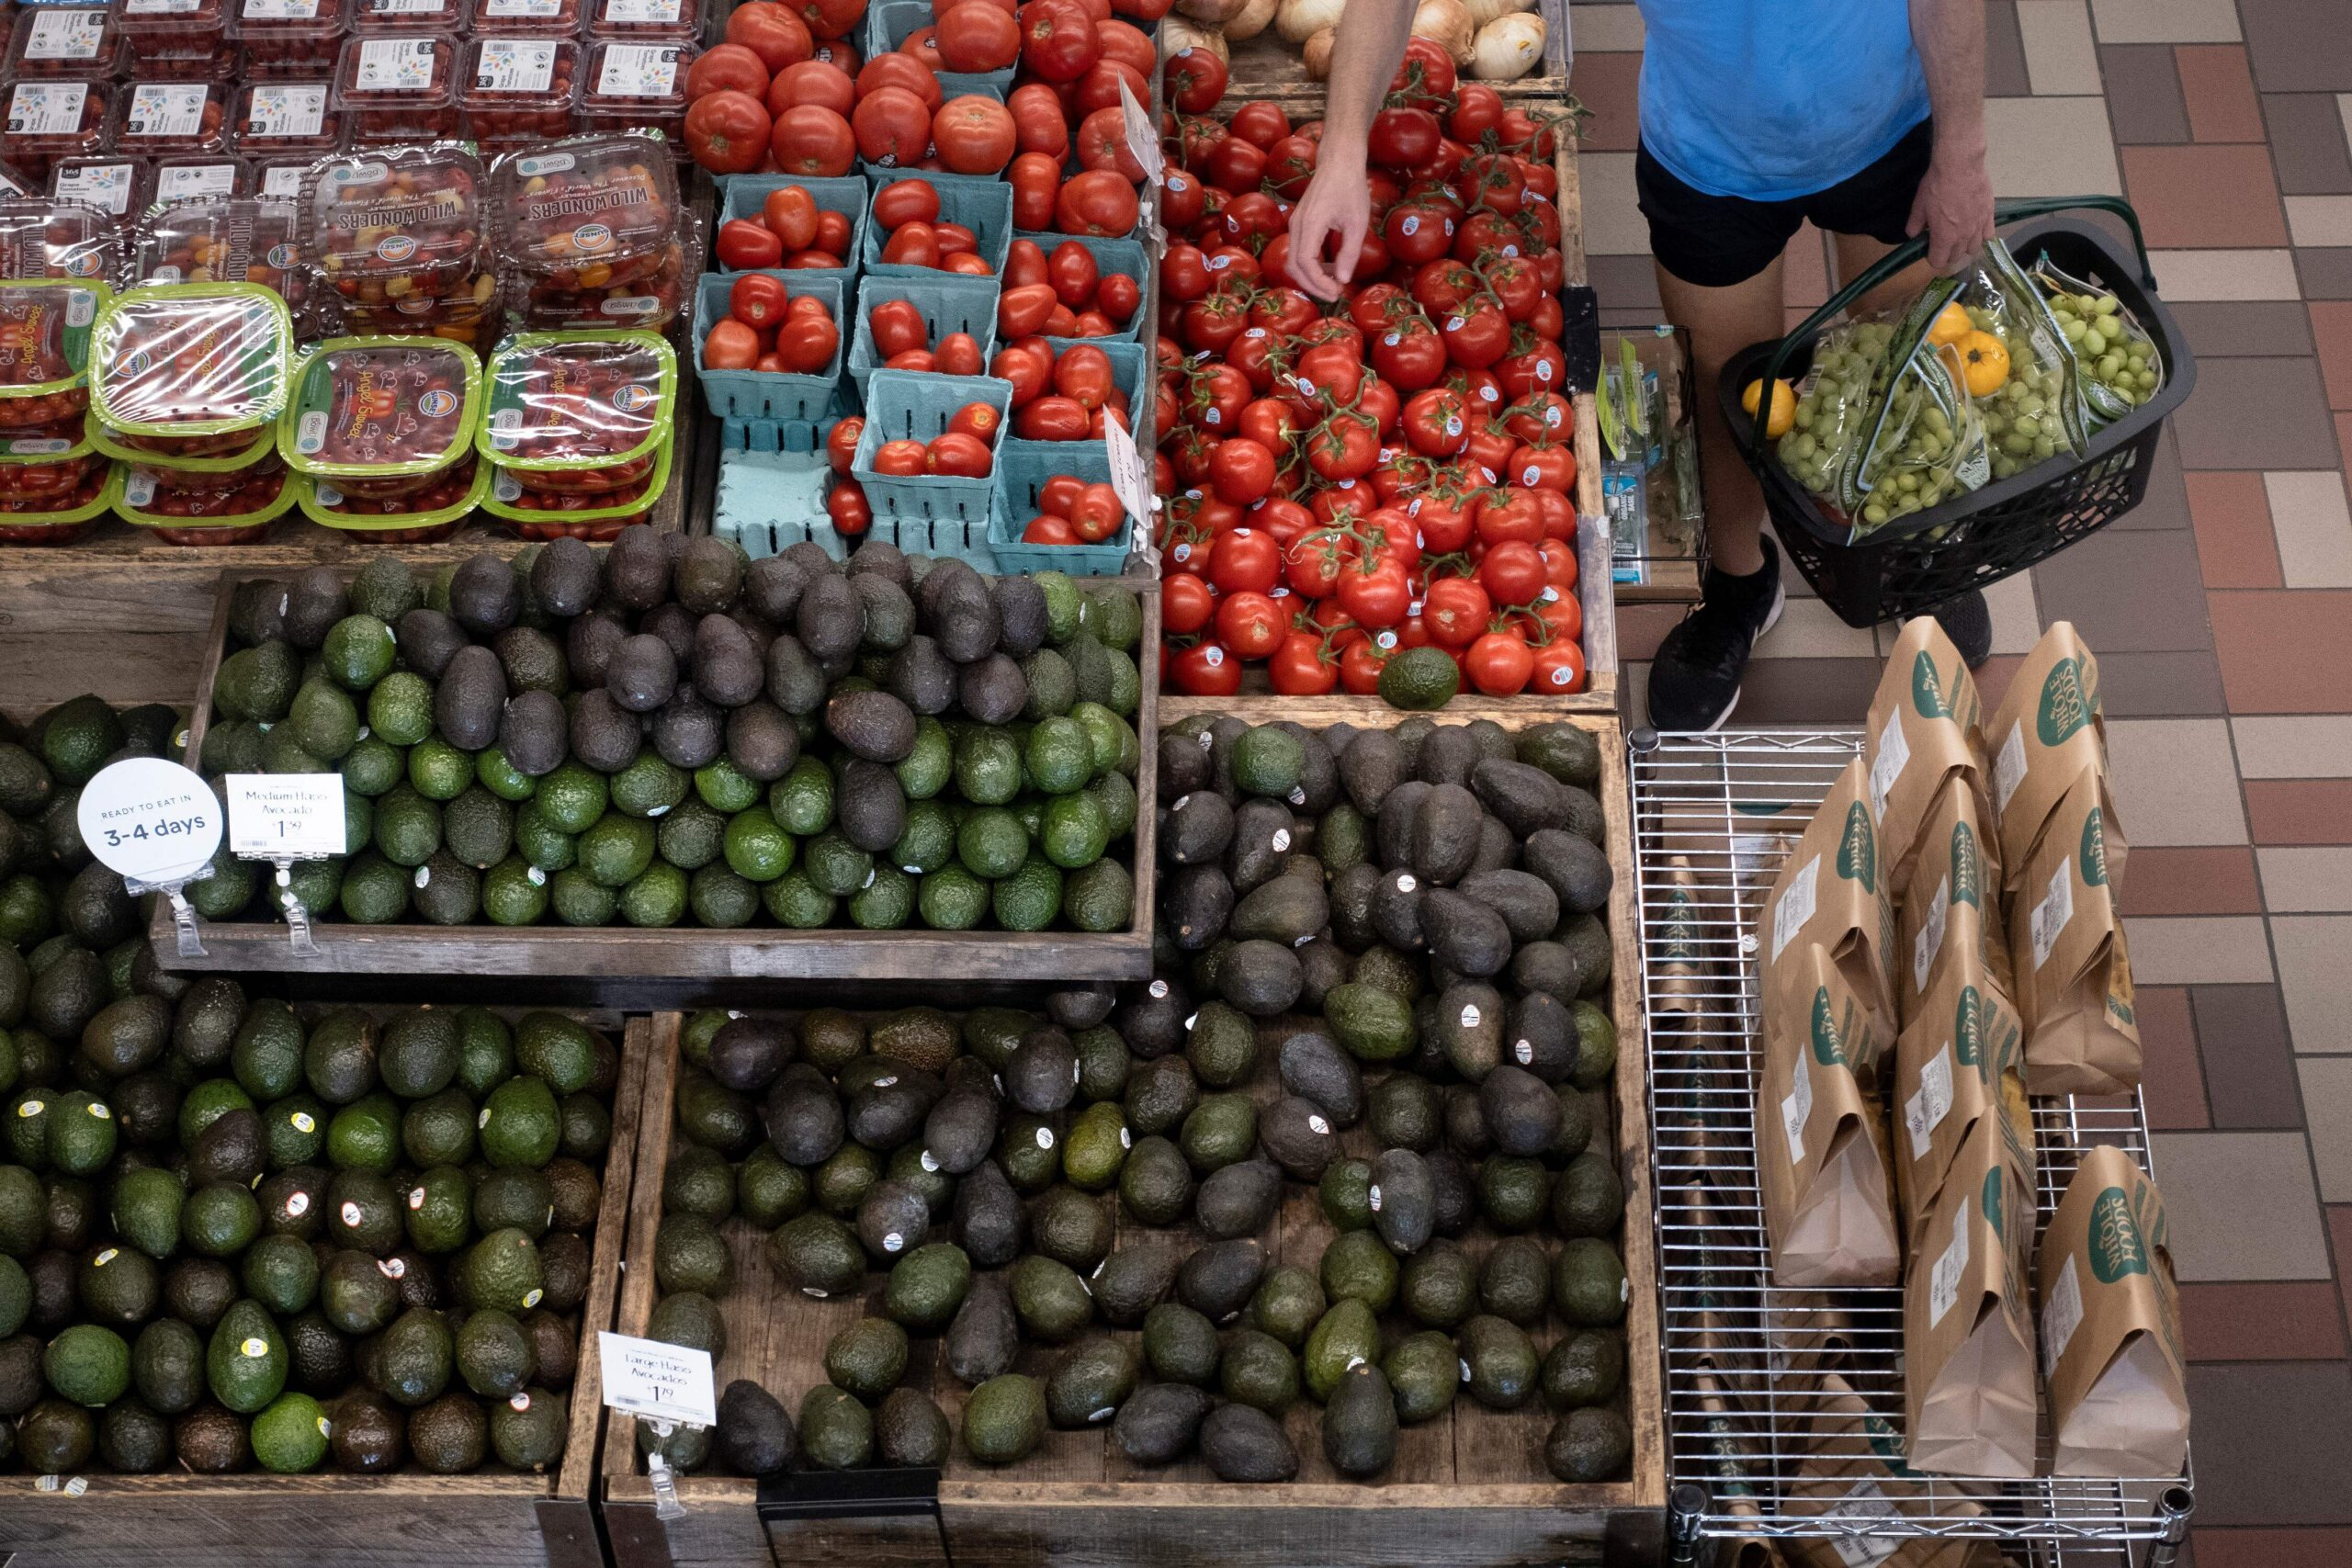 <i>Brendan Smialowski/AFP/Getty Images</i><br/>The US consumer price index rose 5.4% over the previous year in September